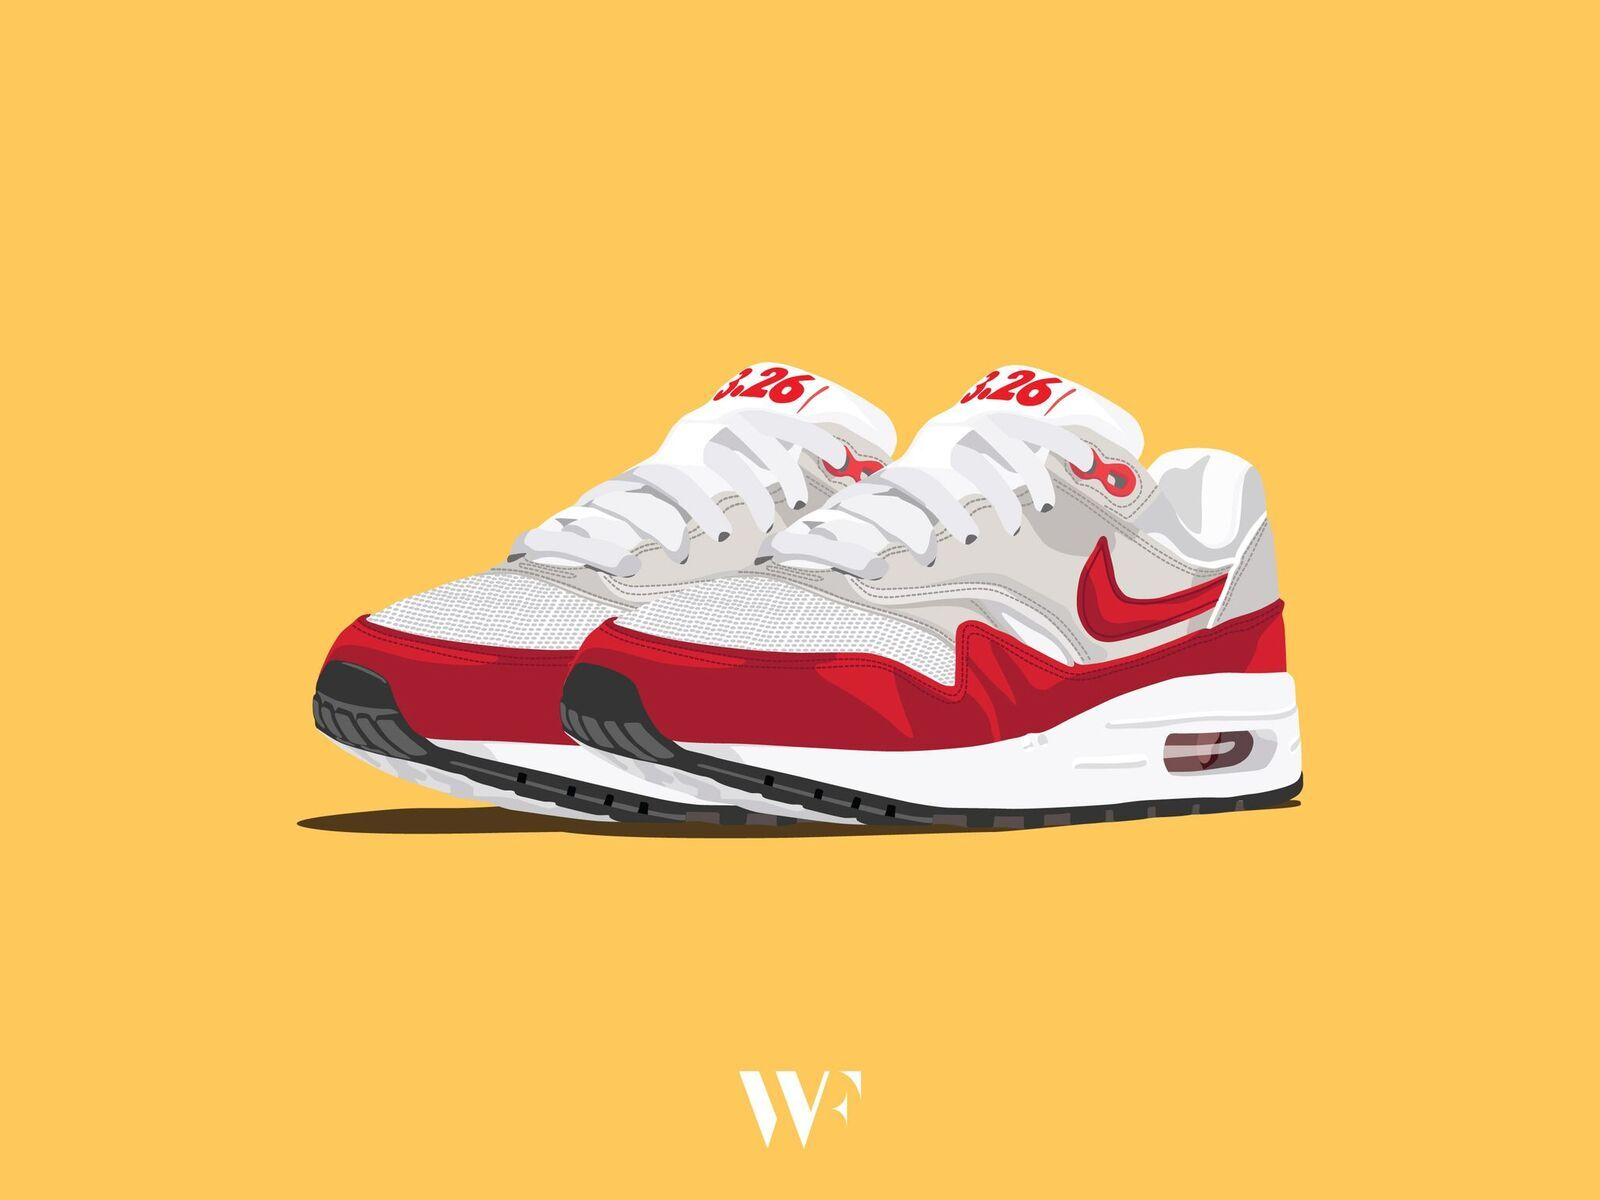 the latest d6dd4 91e0d Lovely Sneakers Illustrations by Stanley Wong – Fubiz Media Air Max Day,  Fire Art,